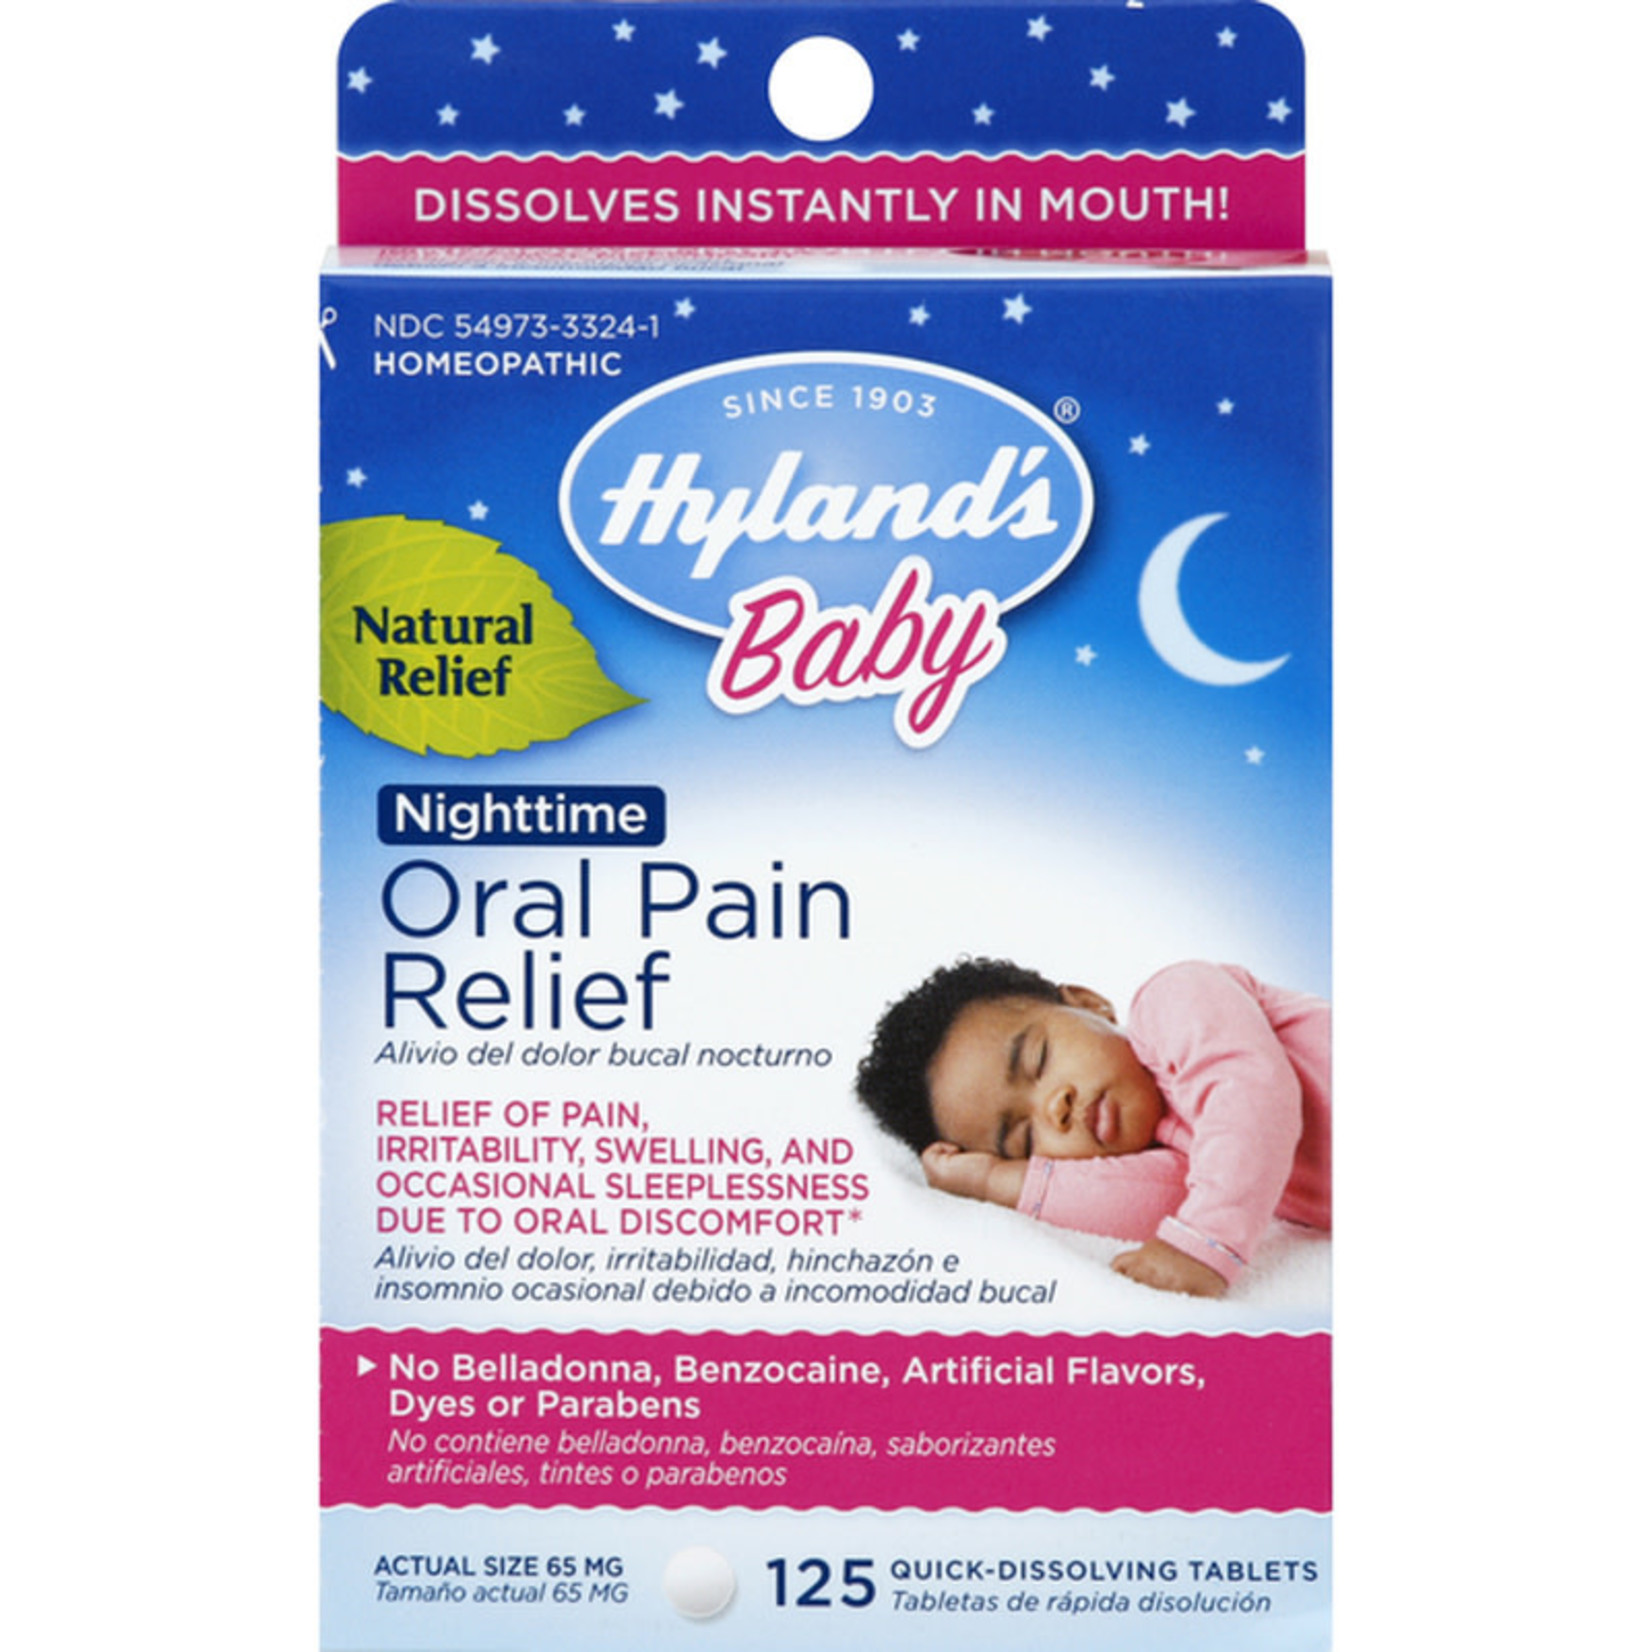 Hyland's Hyland's Baby Nighttime Oral Pain Relief Tablets